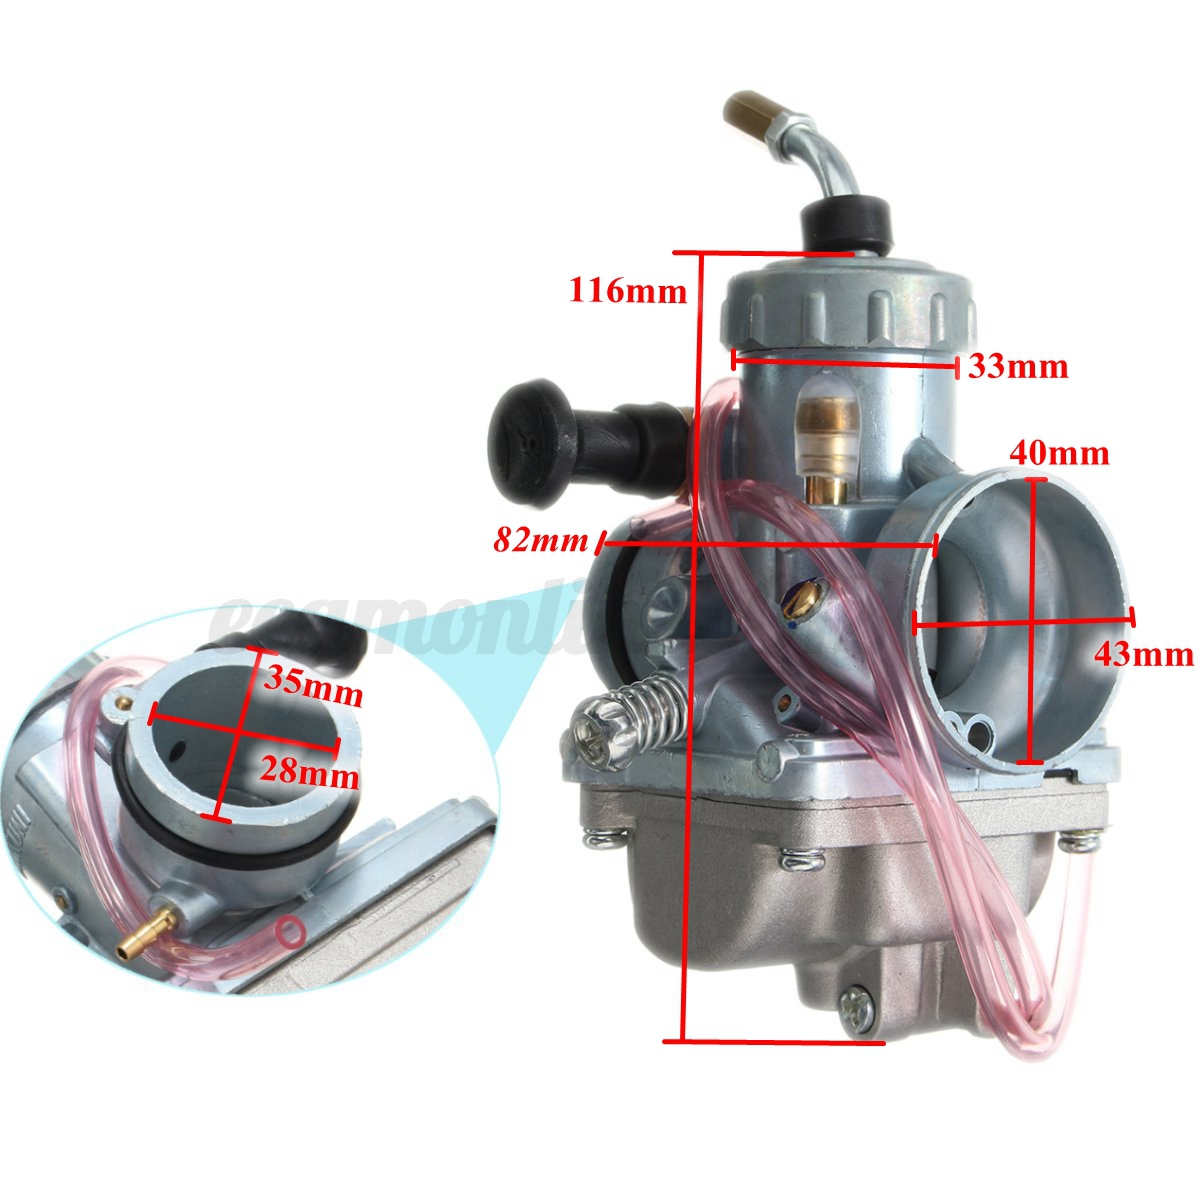 new engine carburetor carb assembly for yamaha yfs200 blaster 200 1988 2006 ebay. Black Bedroom Furniture Sets. Home Design Ideas